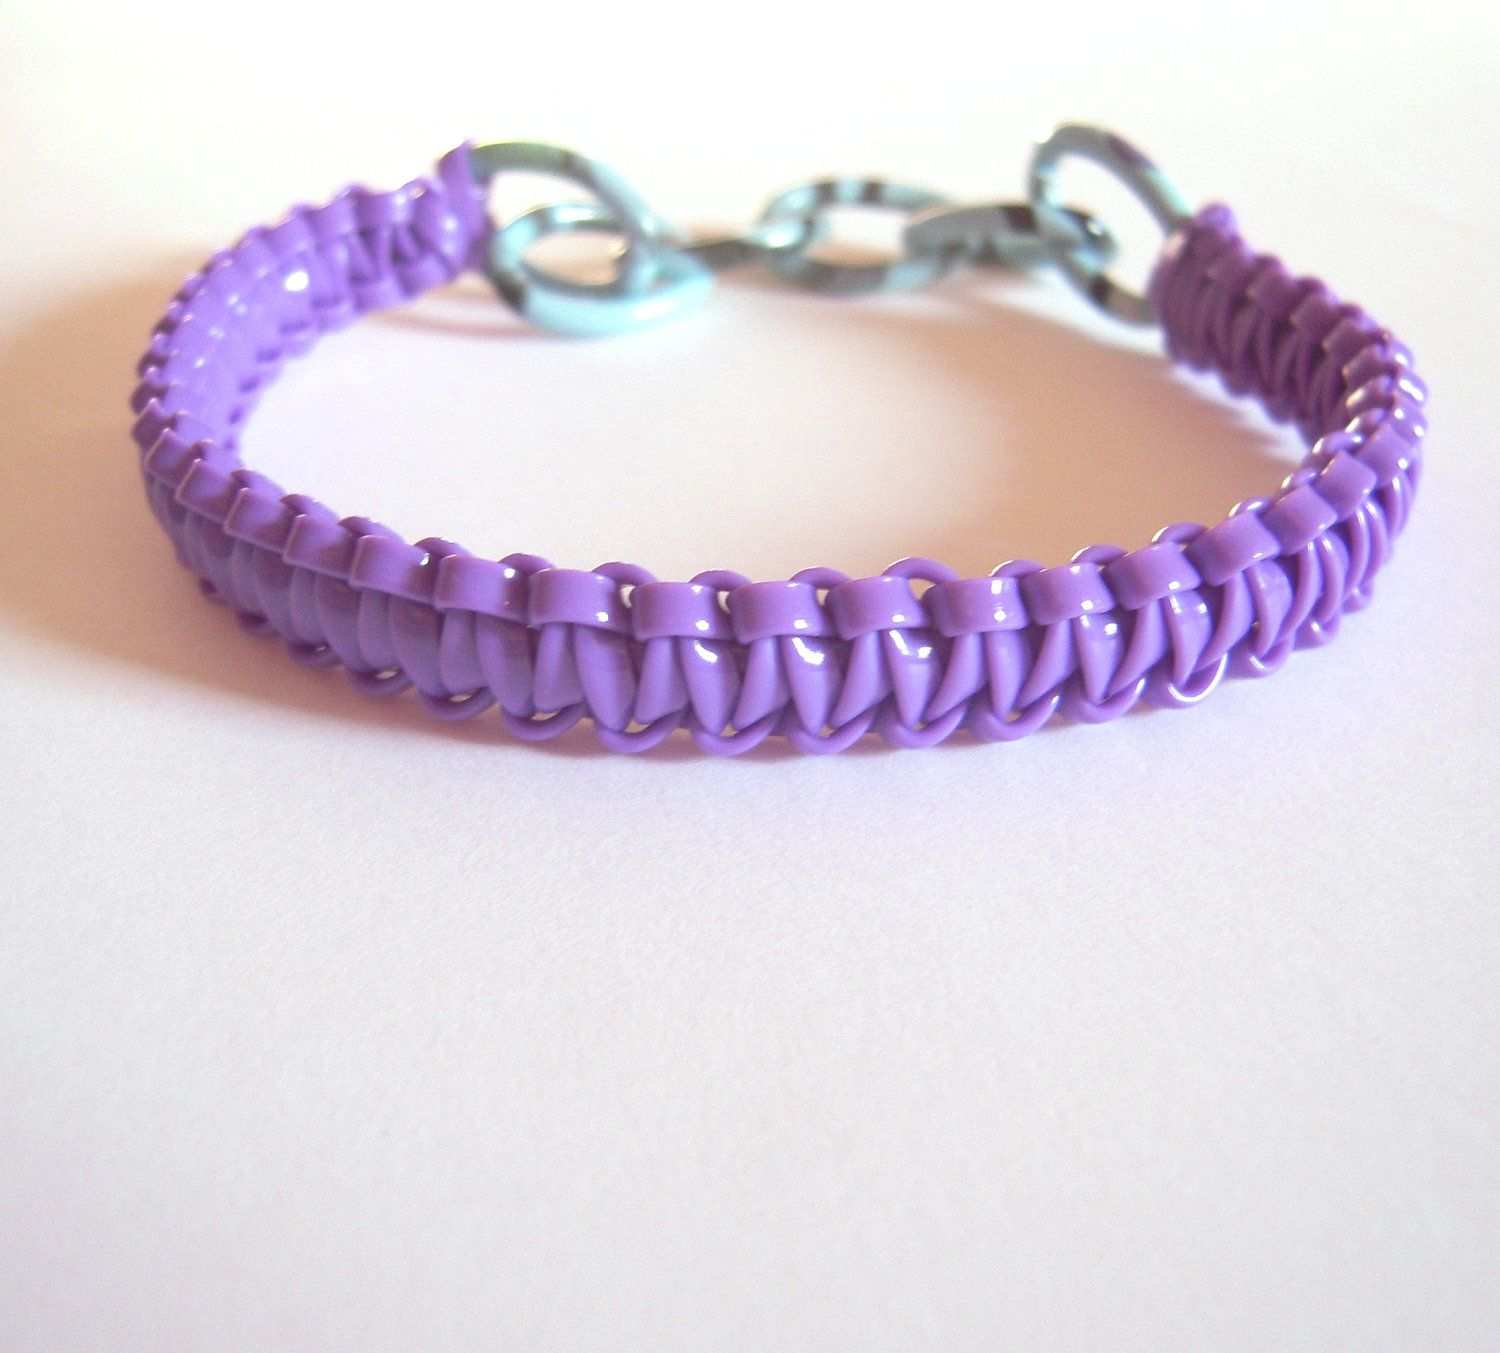 Gimp Bracelet Patterns Google Search Gimp And Boondoggle